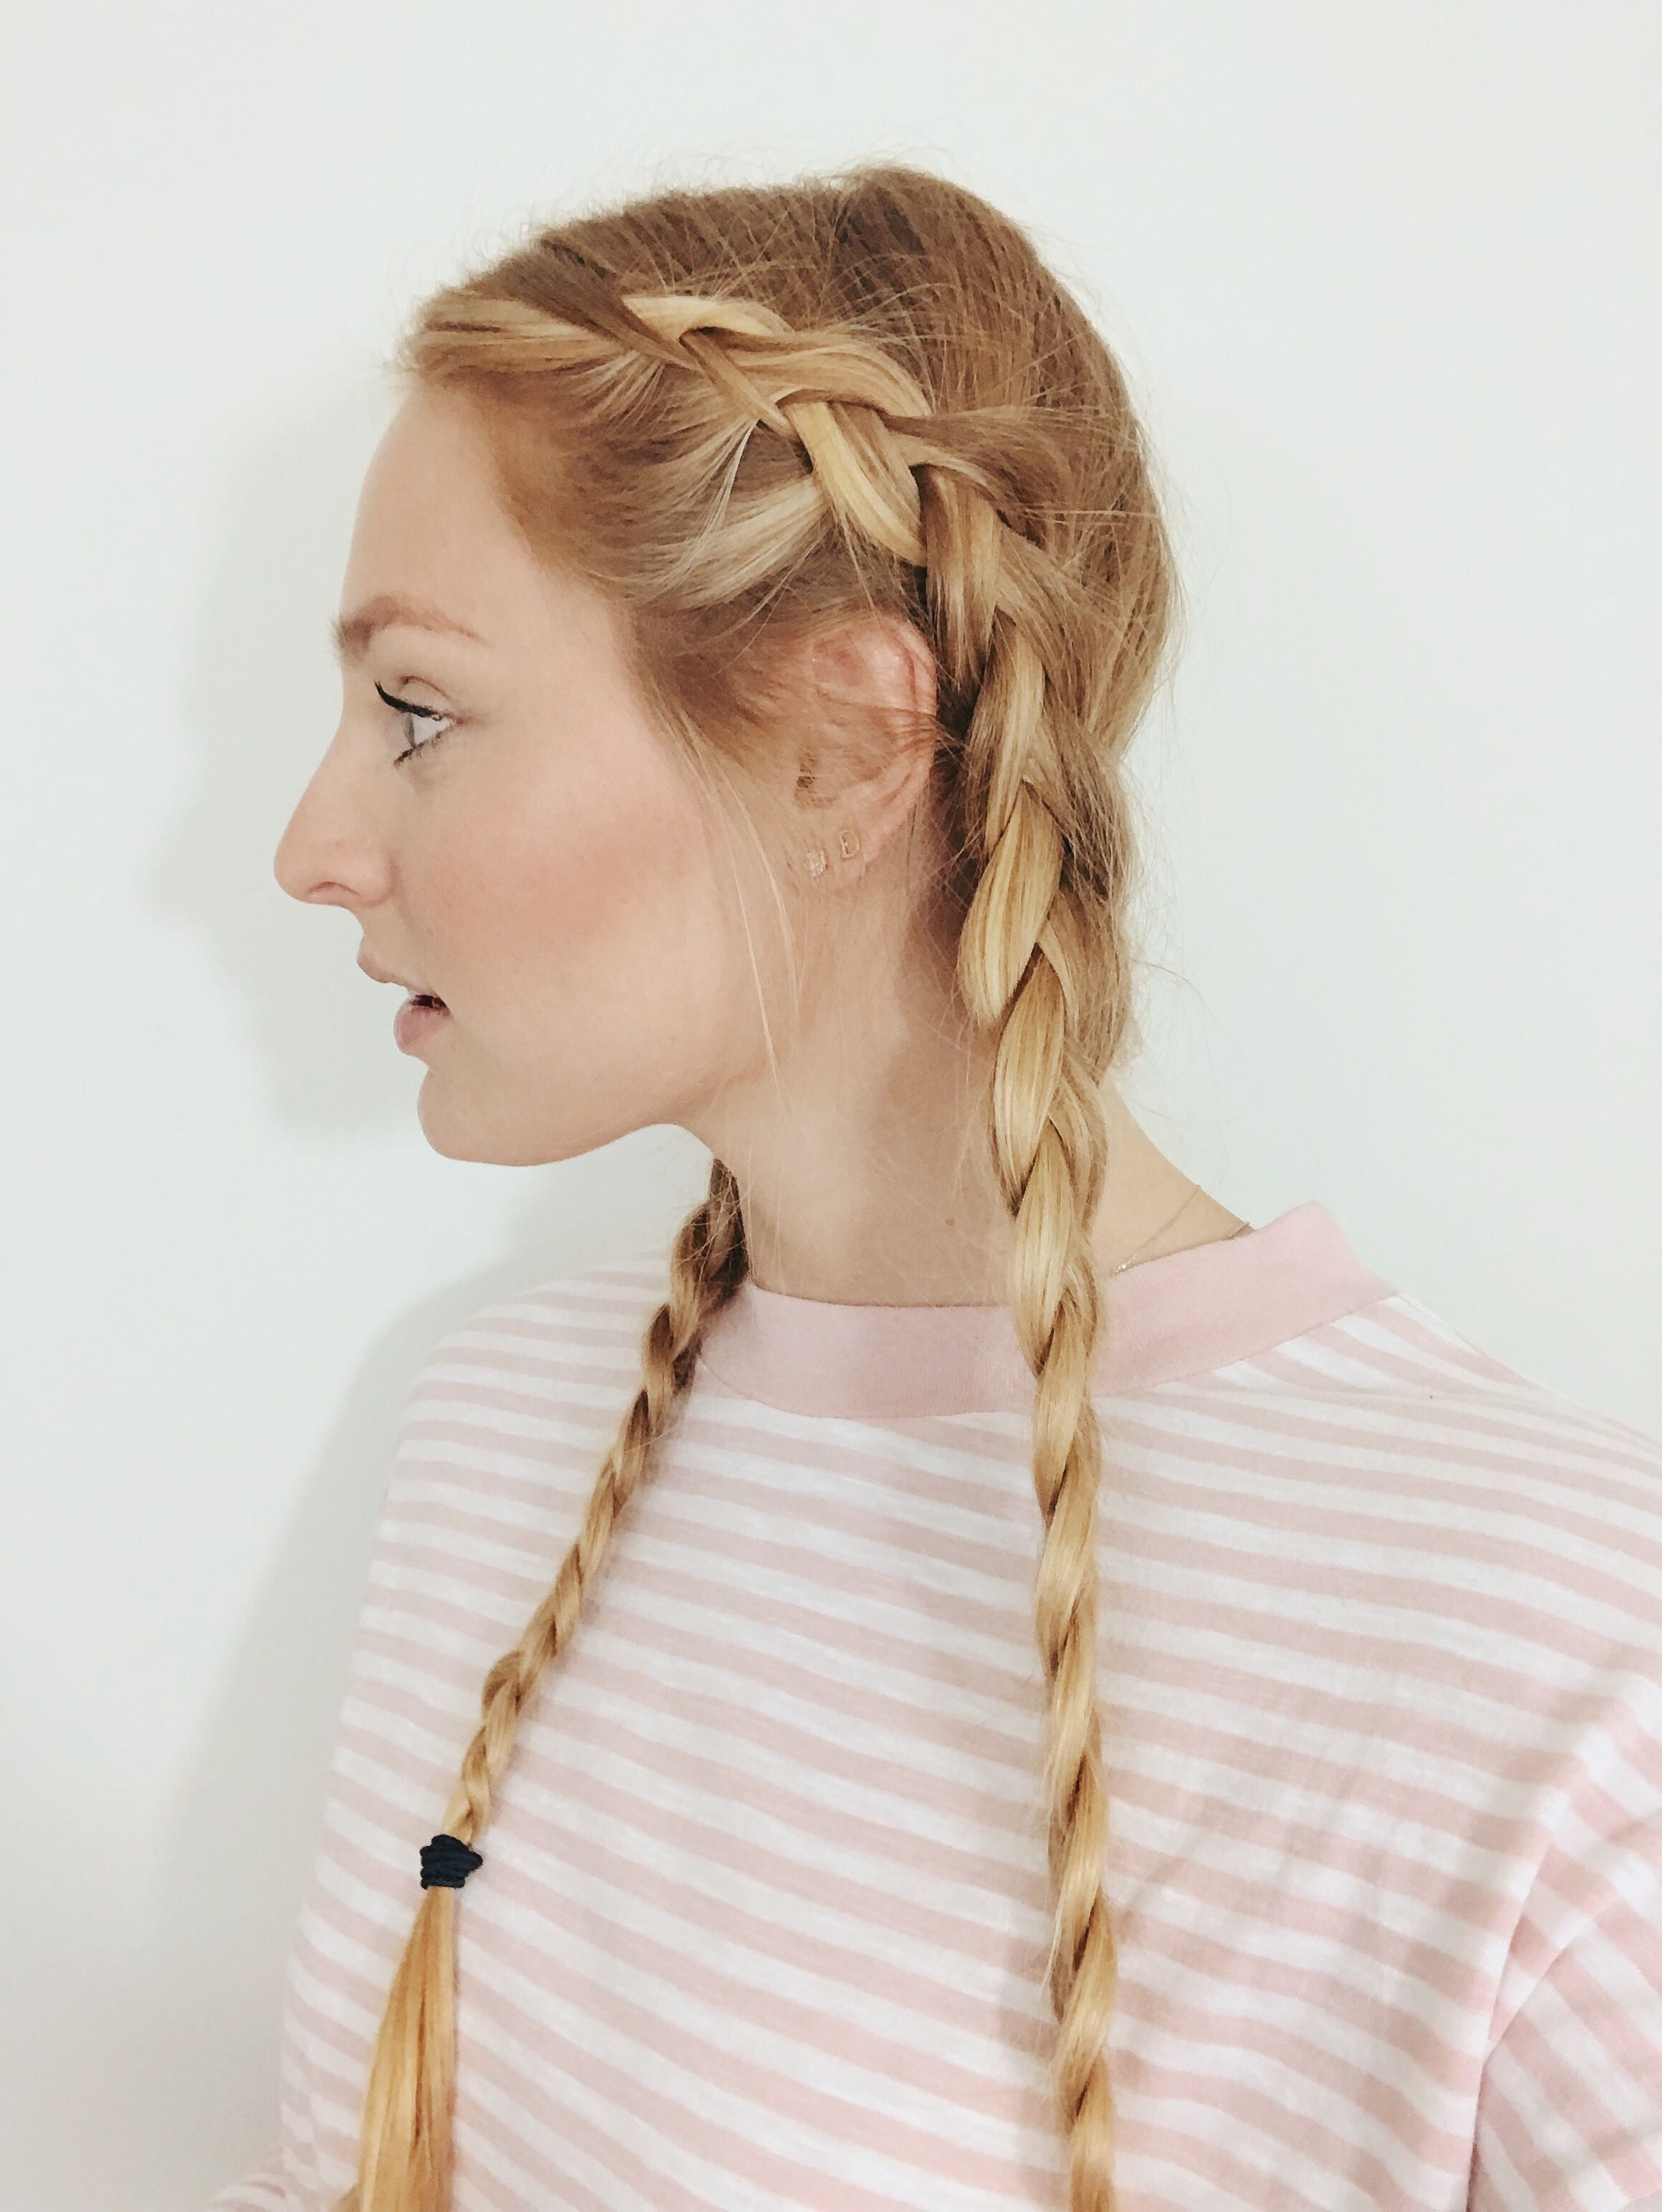 Really Easy Hairstyle Ideas That Can Instantly Spruce Up Your Look They Seriously Take Under Five Minutes To Hair Styles Easy Hairstyles Second Day Hairstyles